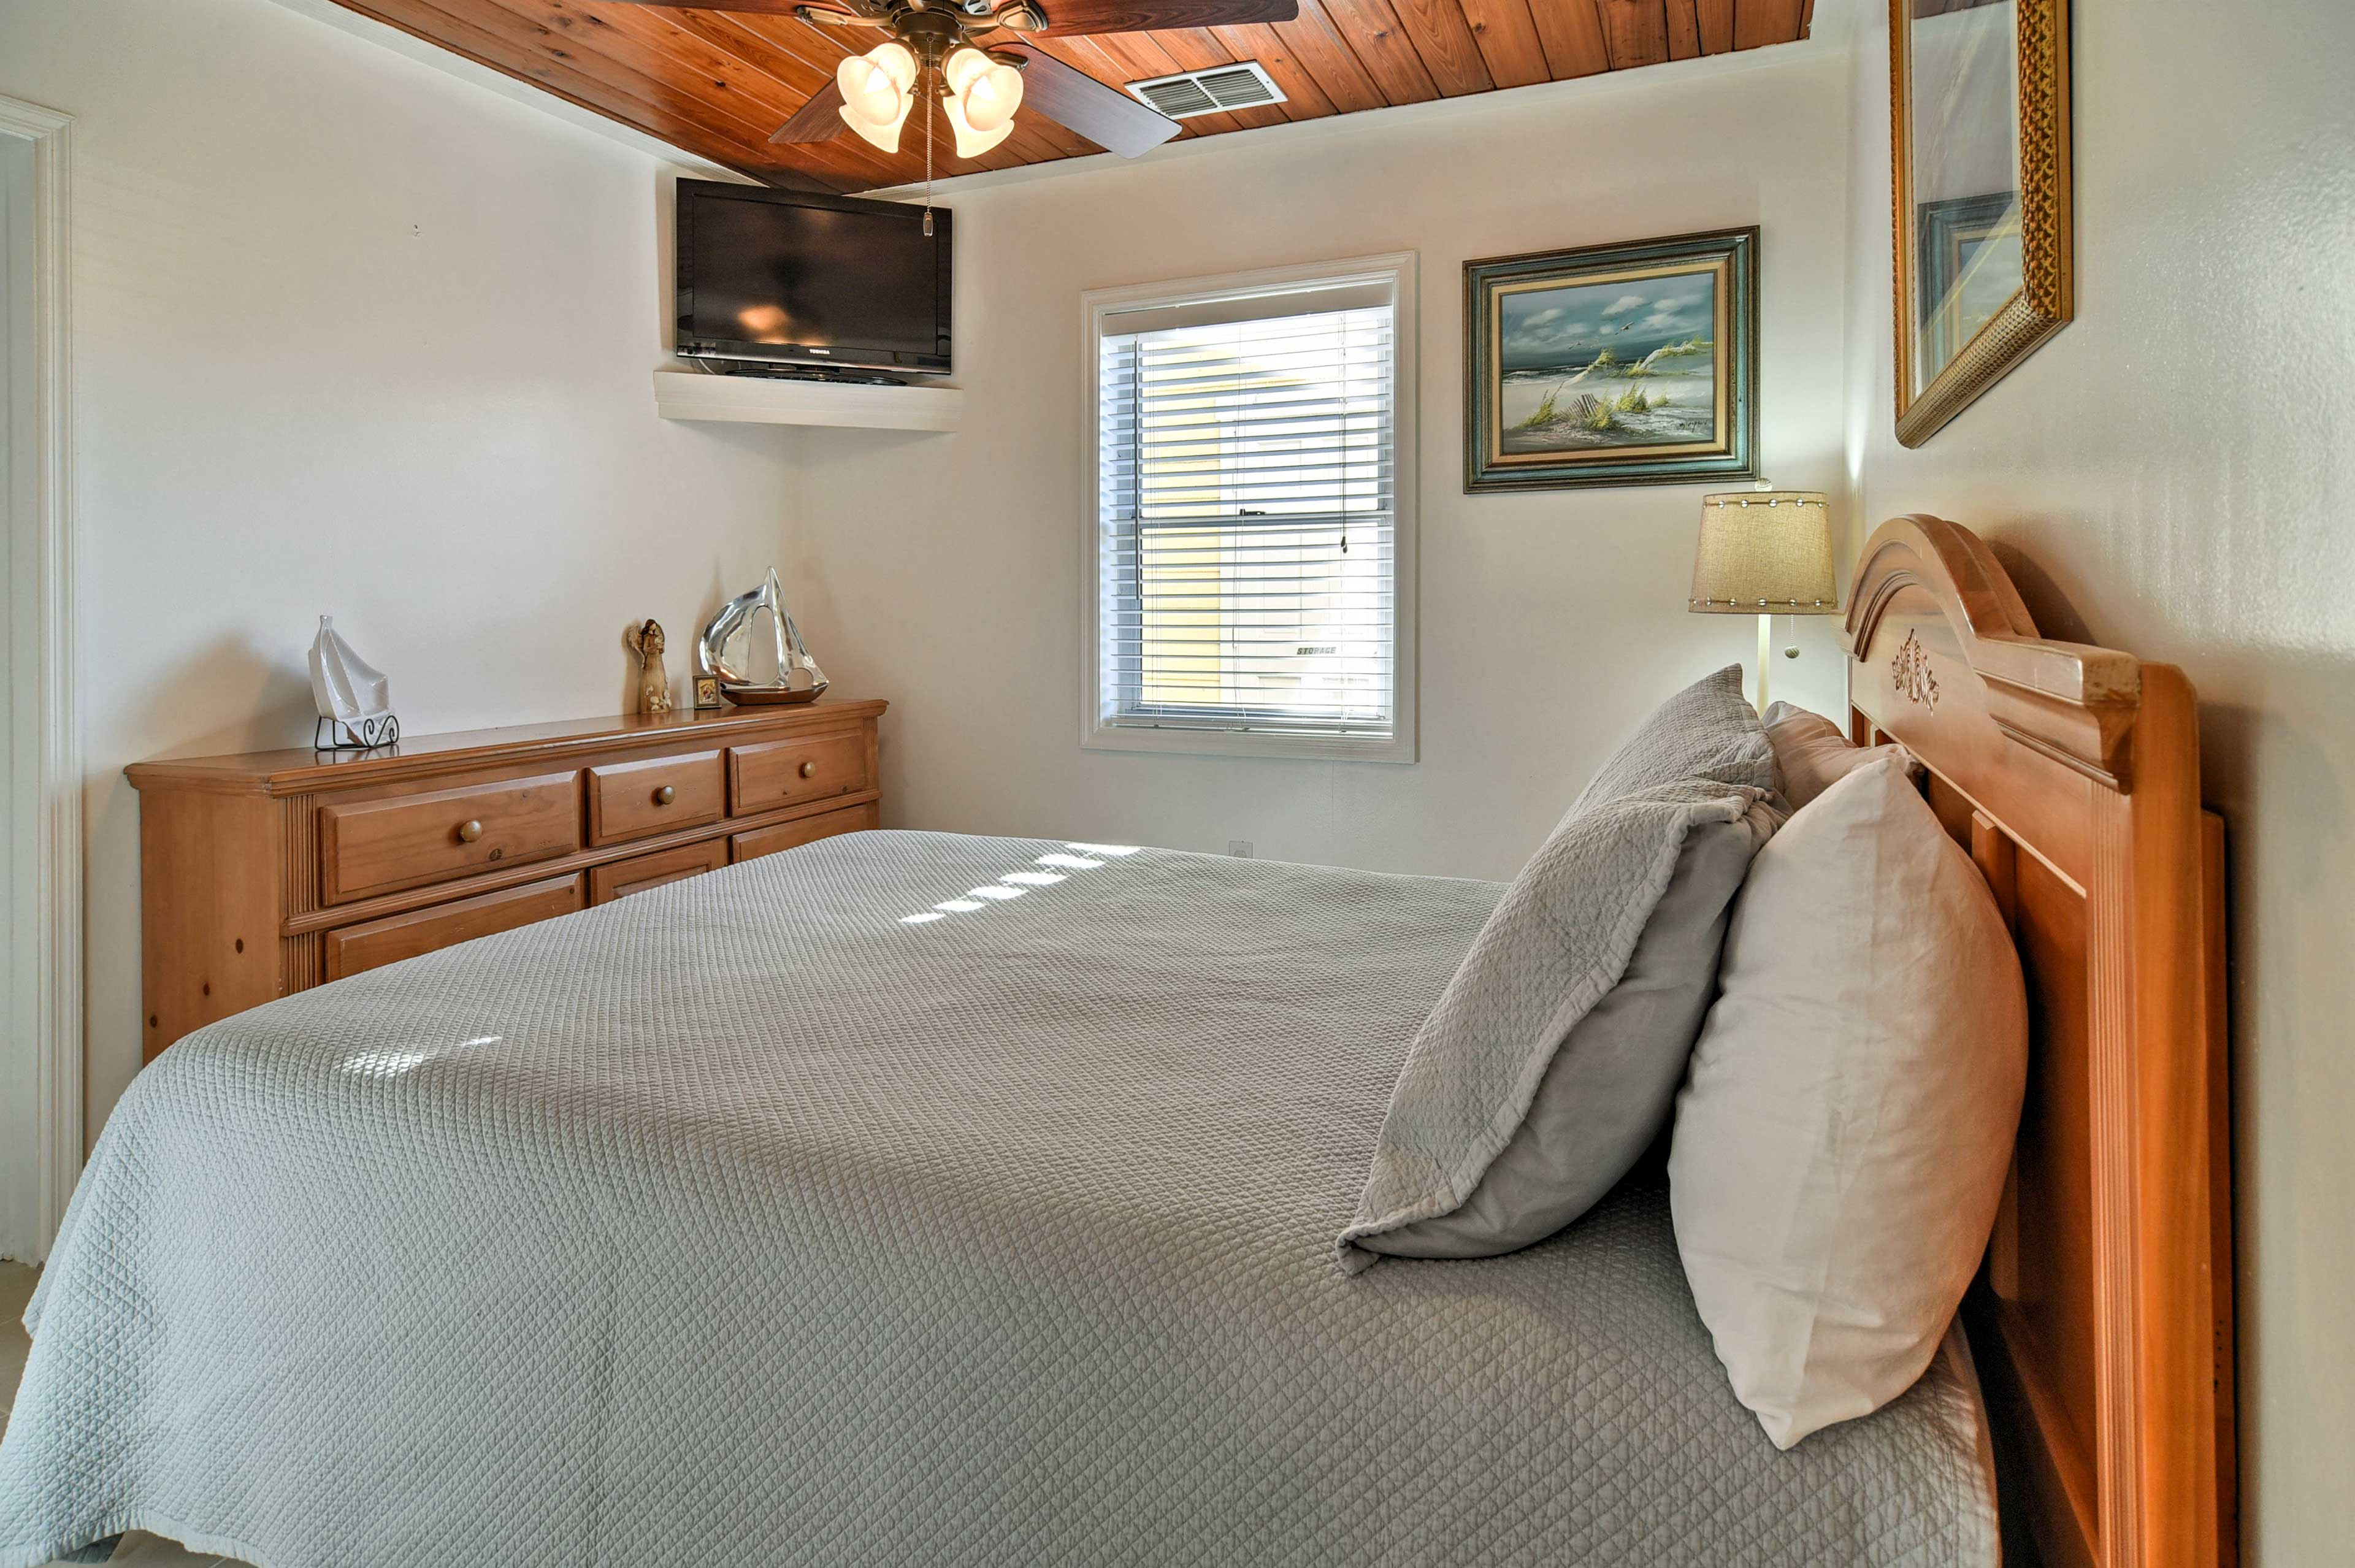 The master bedroom includes a plush queen bed.